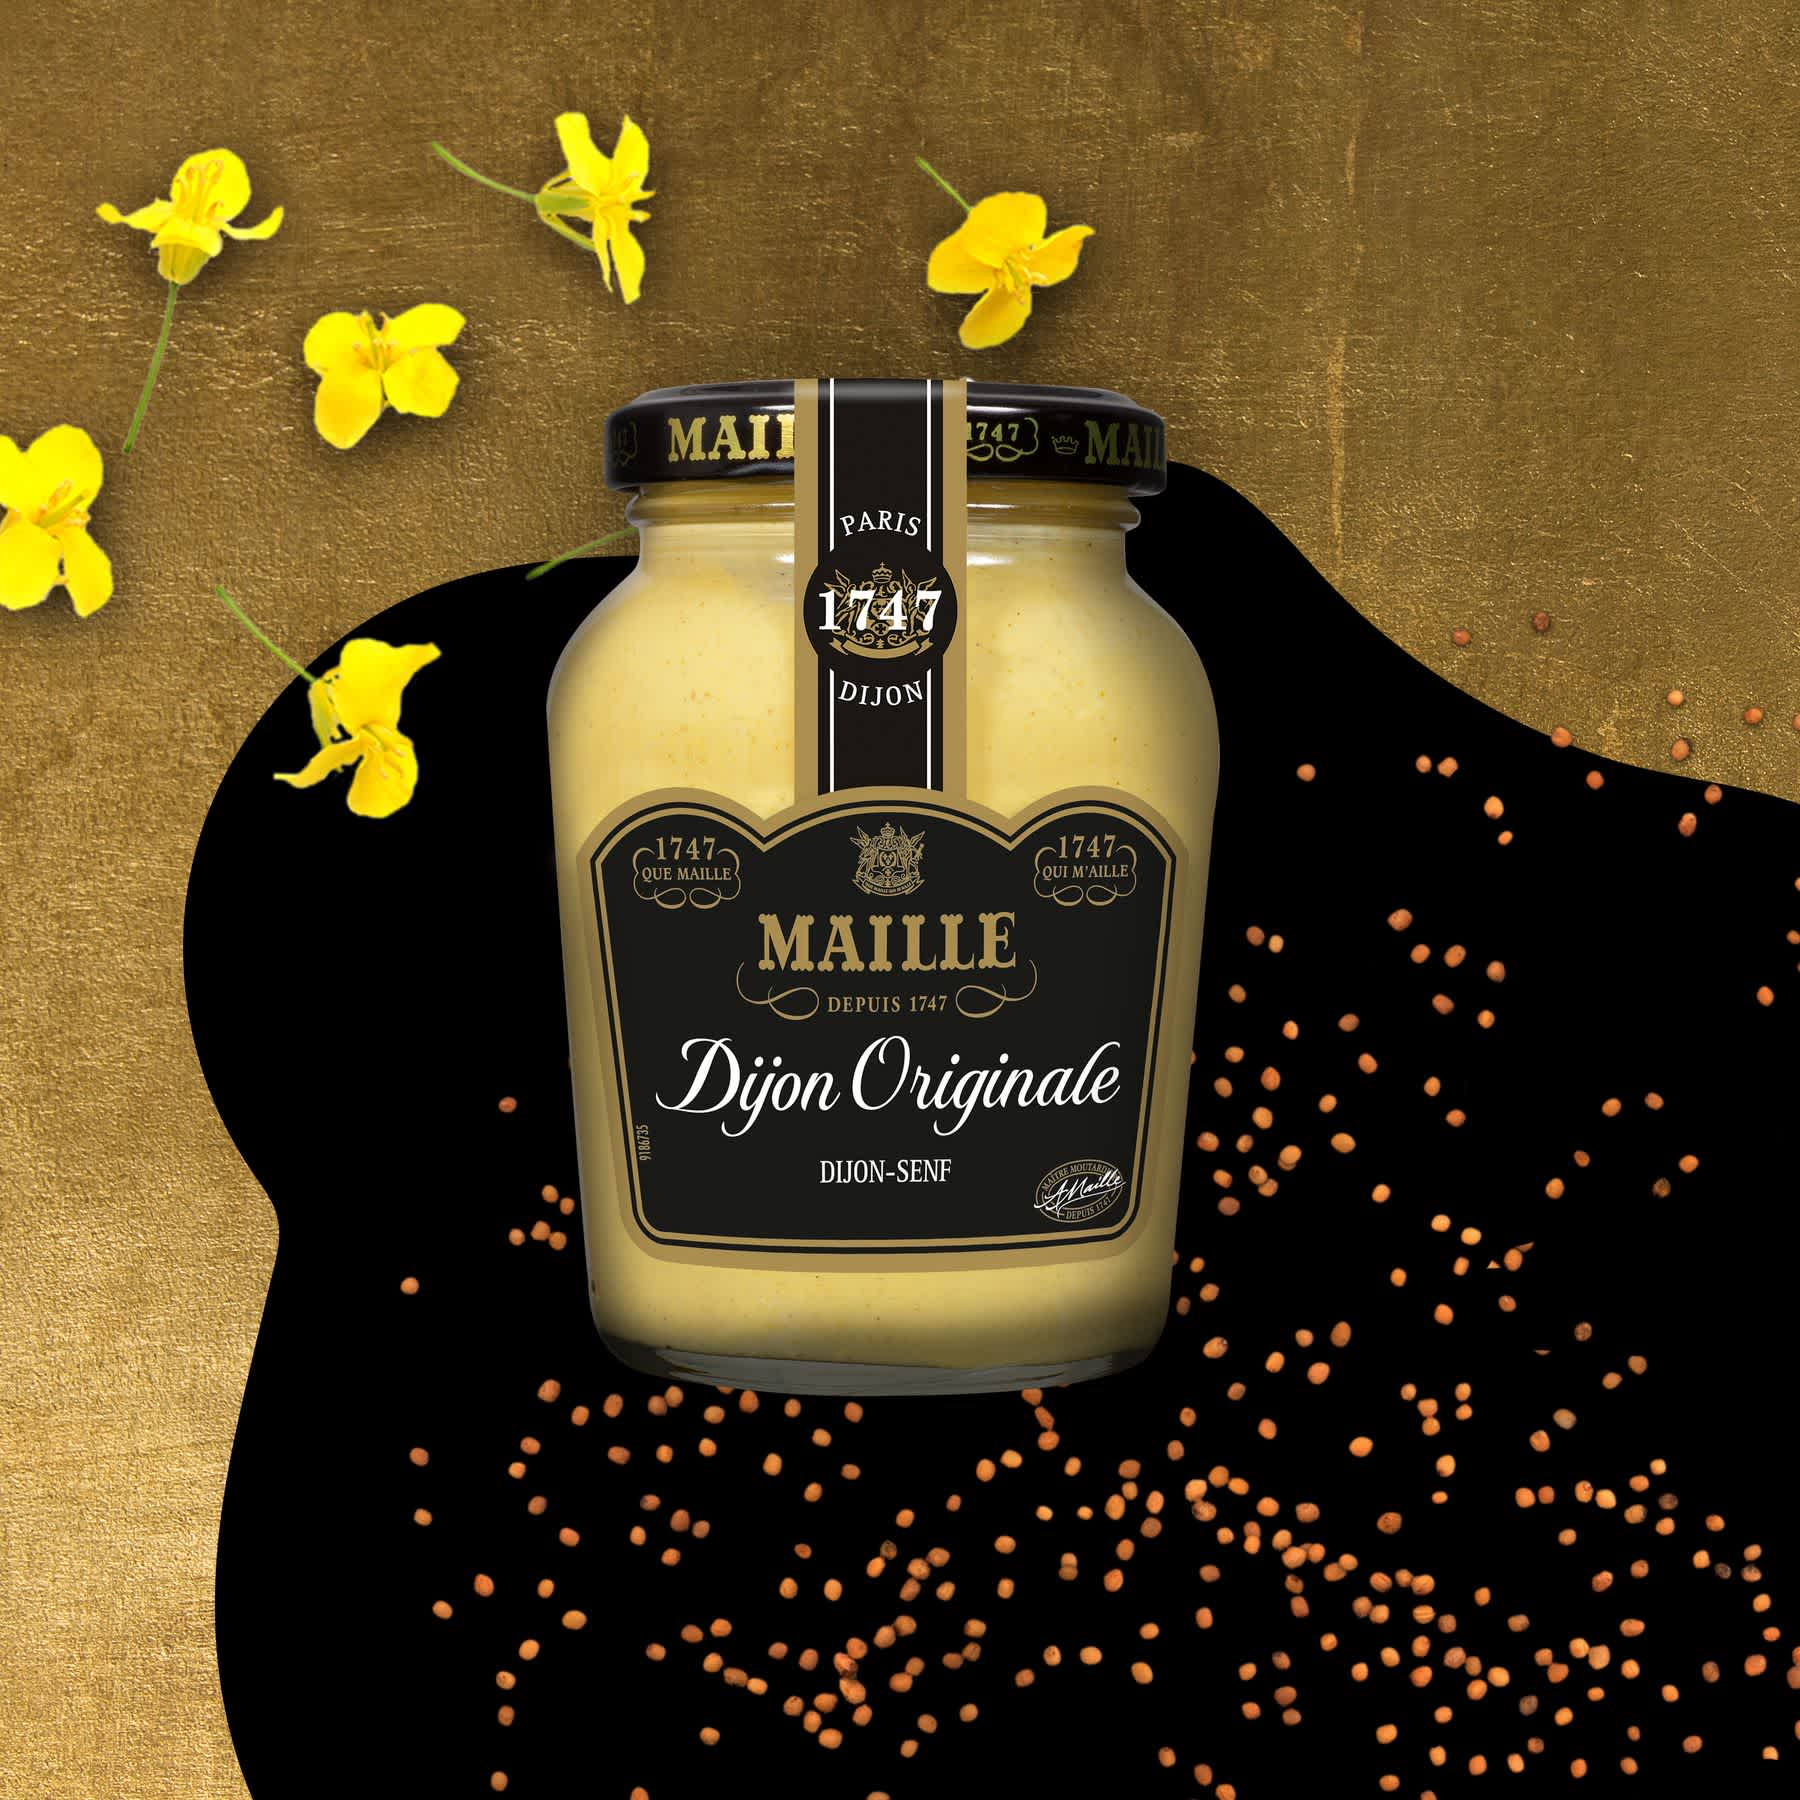 Maille Moutarde de Dijon l'Originale 215g, new visual